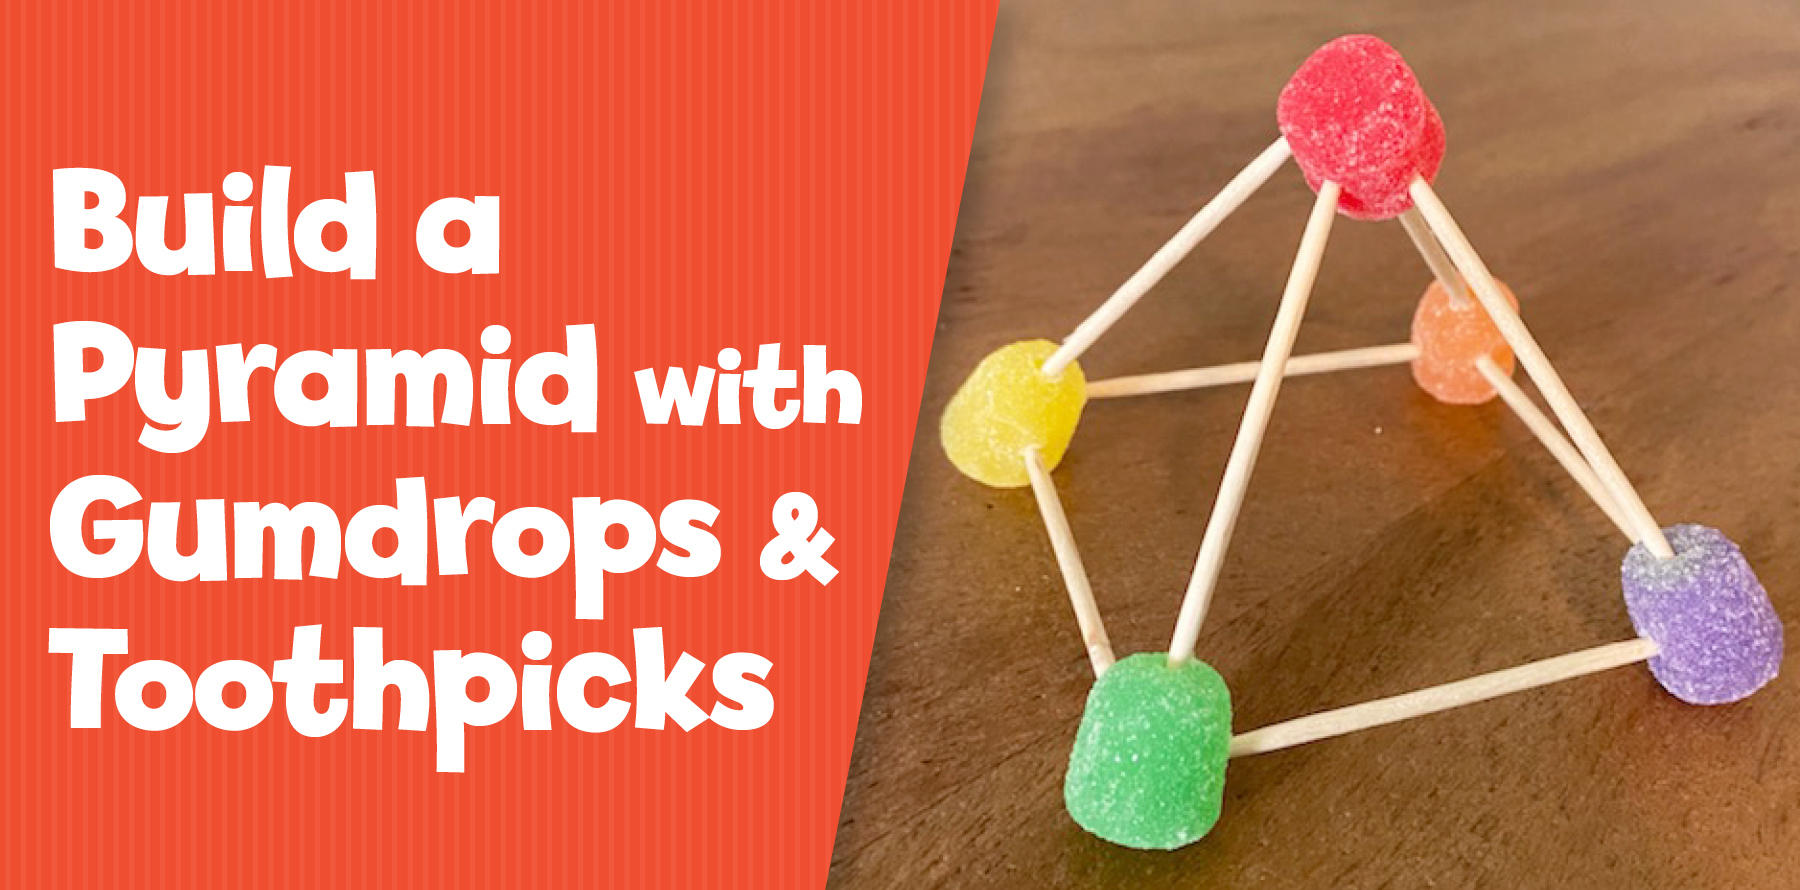 Build a Pyramid with Gumdrops and Toothpicks